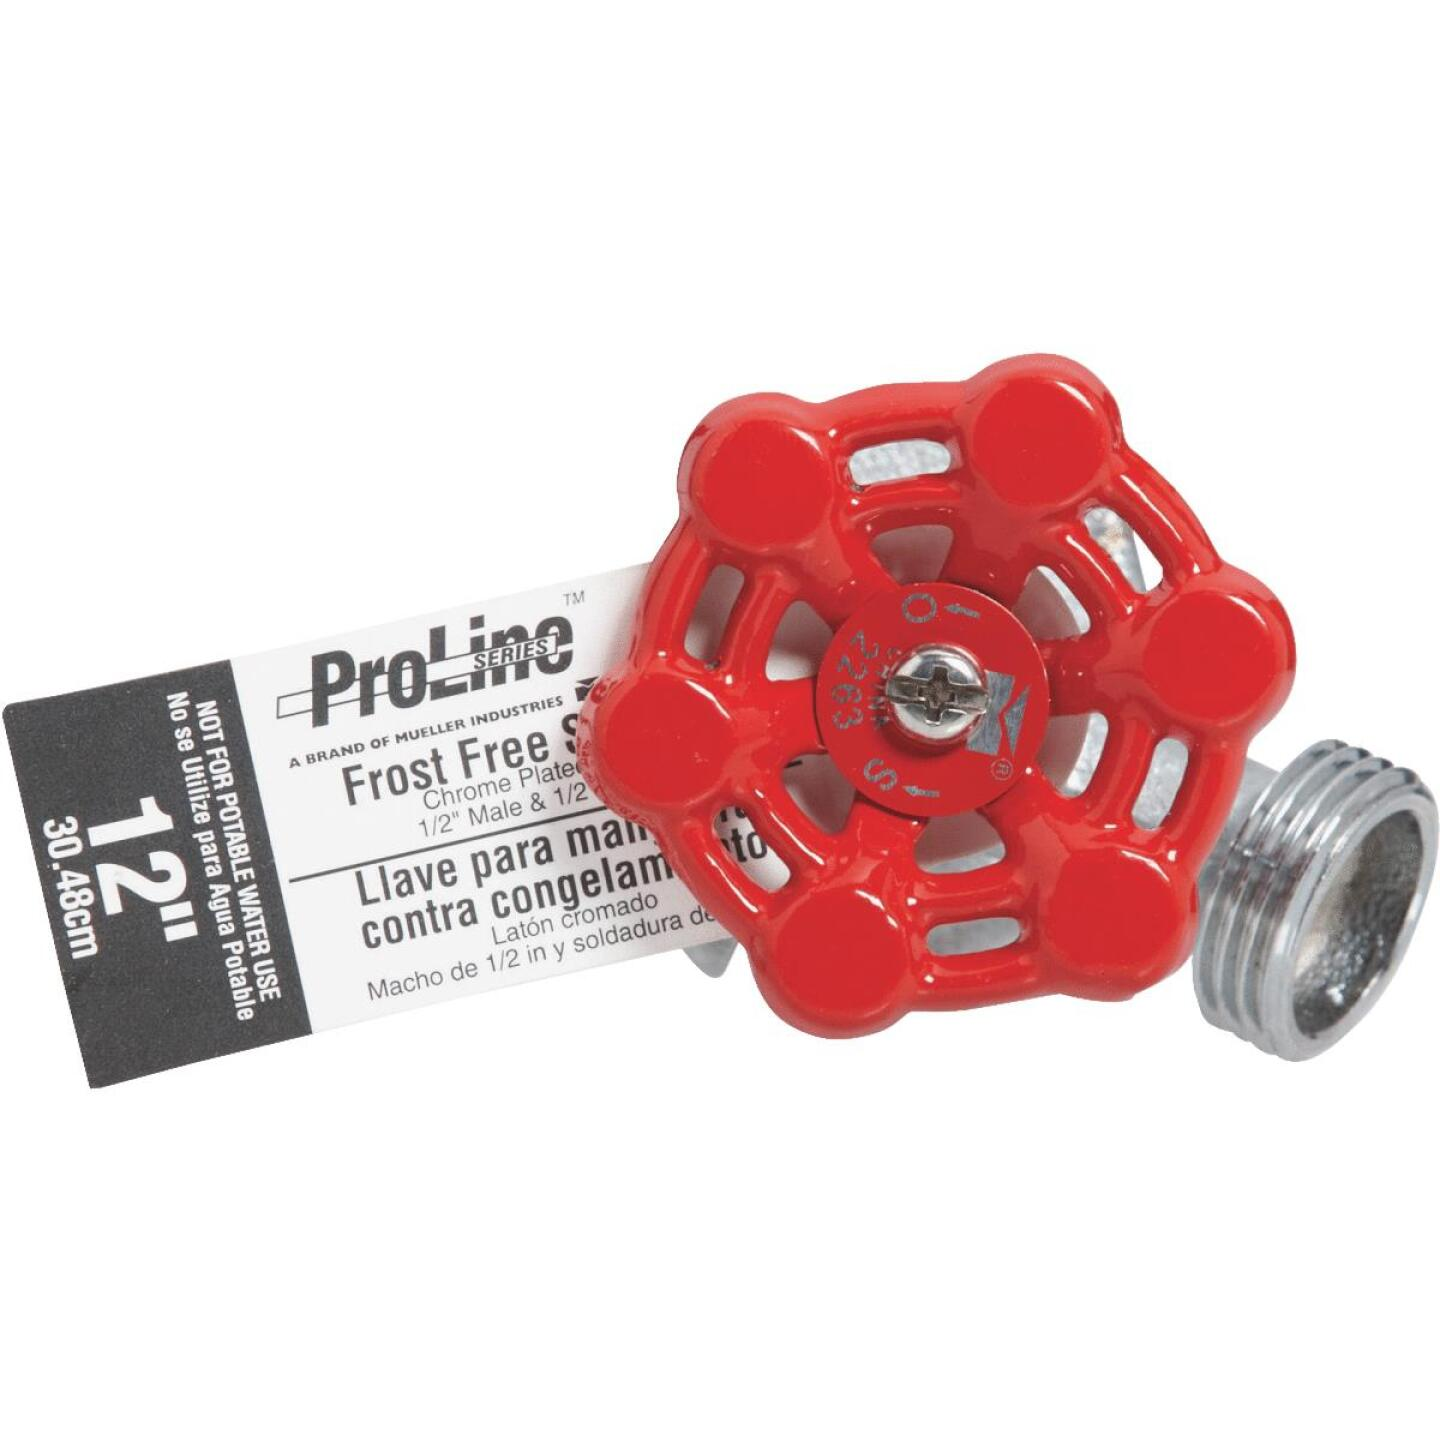 ProLine 1/2 In. SWT X 1/2 In. MIP X 3/4 In. HT X 12 In. Chrome Plated Brass Frost Free Wall Hydrant Image 2